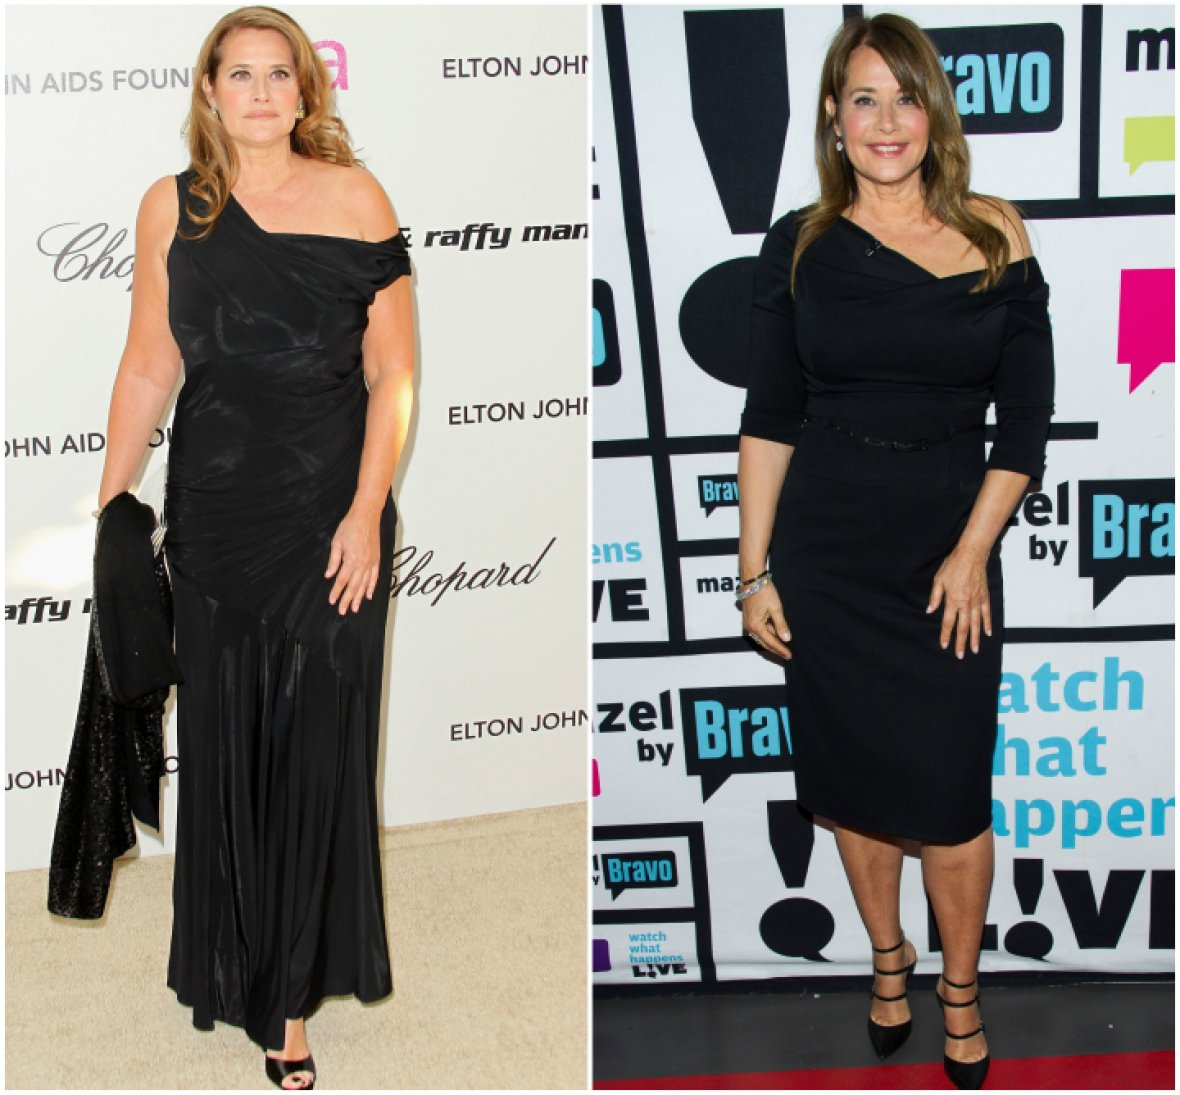 lorraine bracco before and after weight loss pic